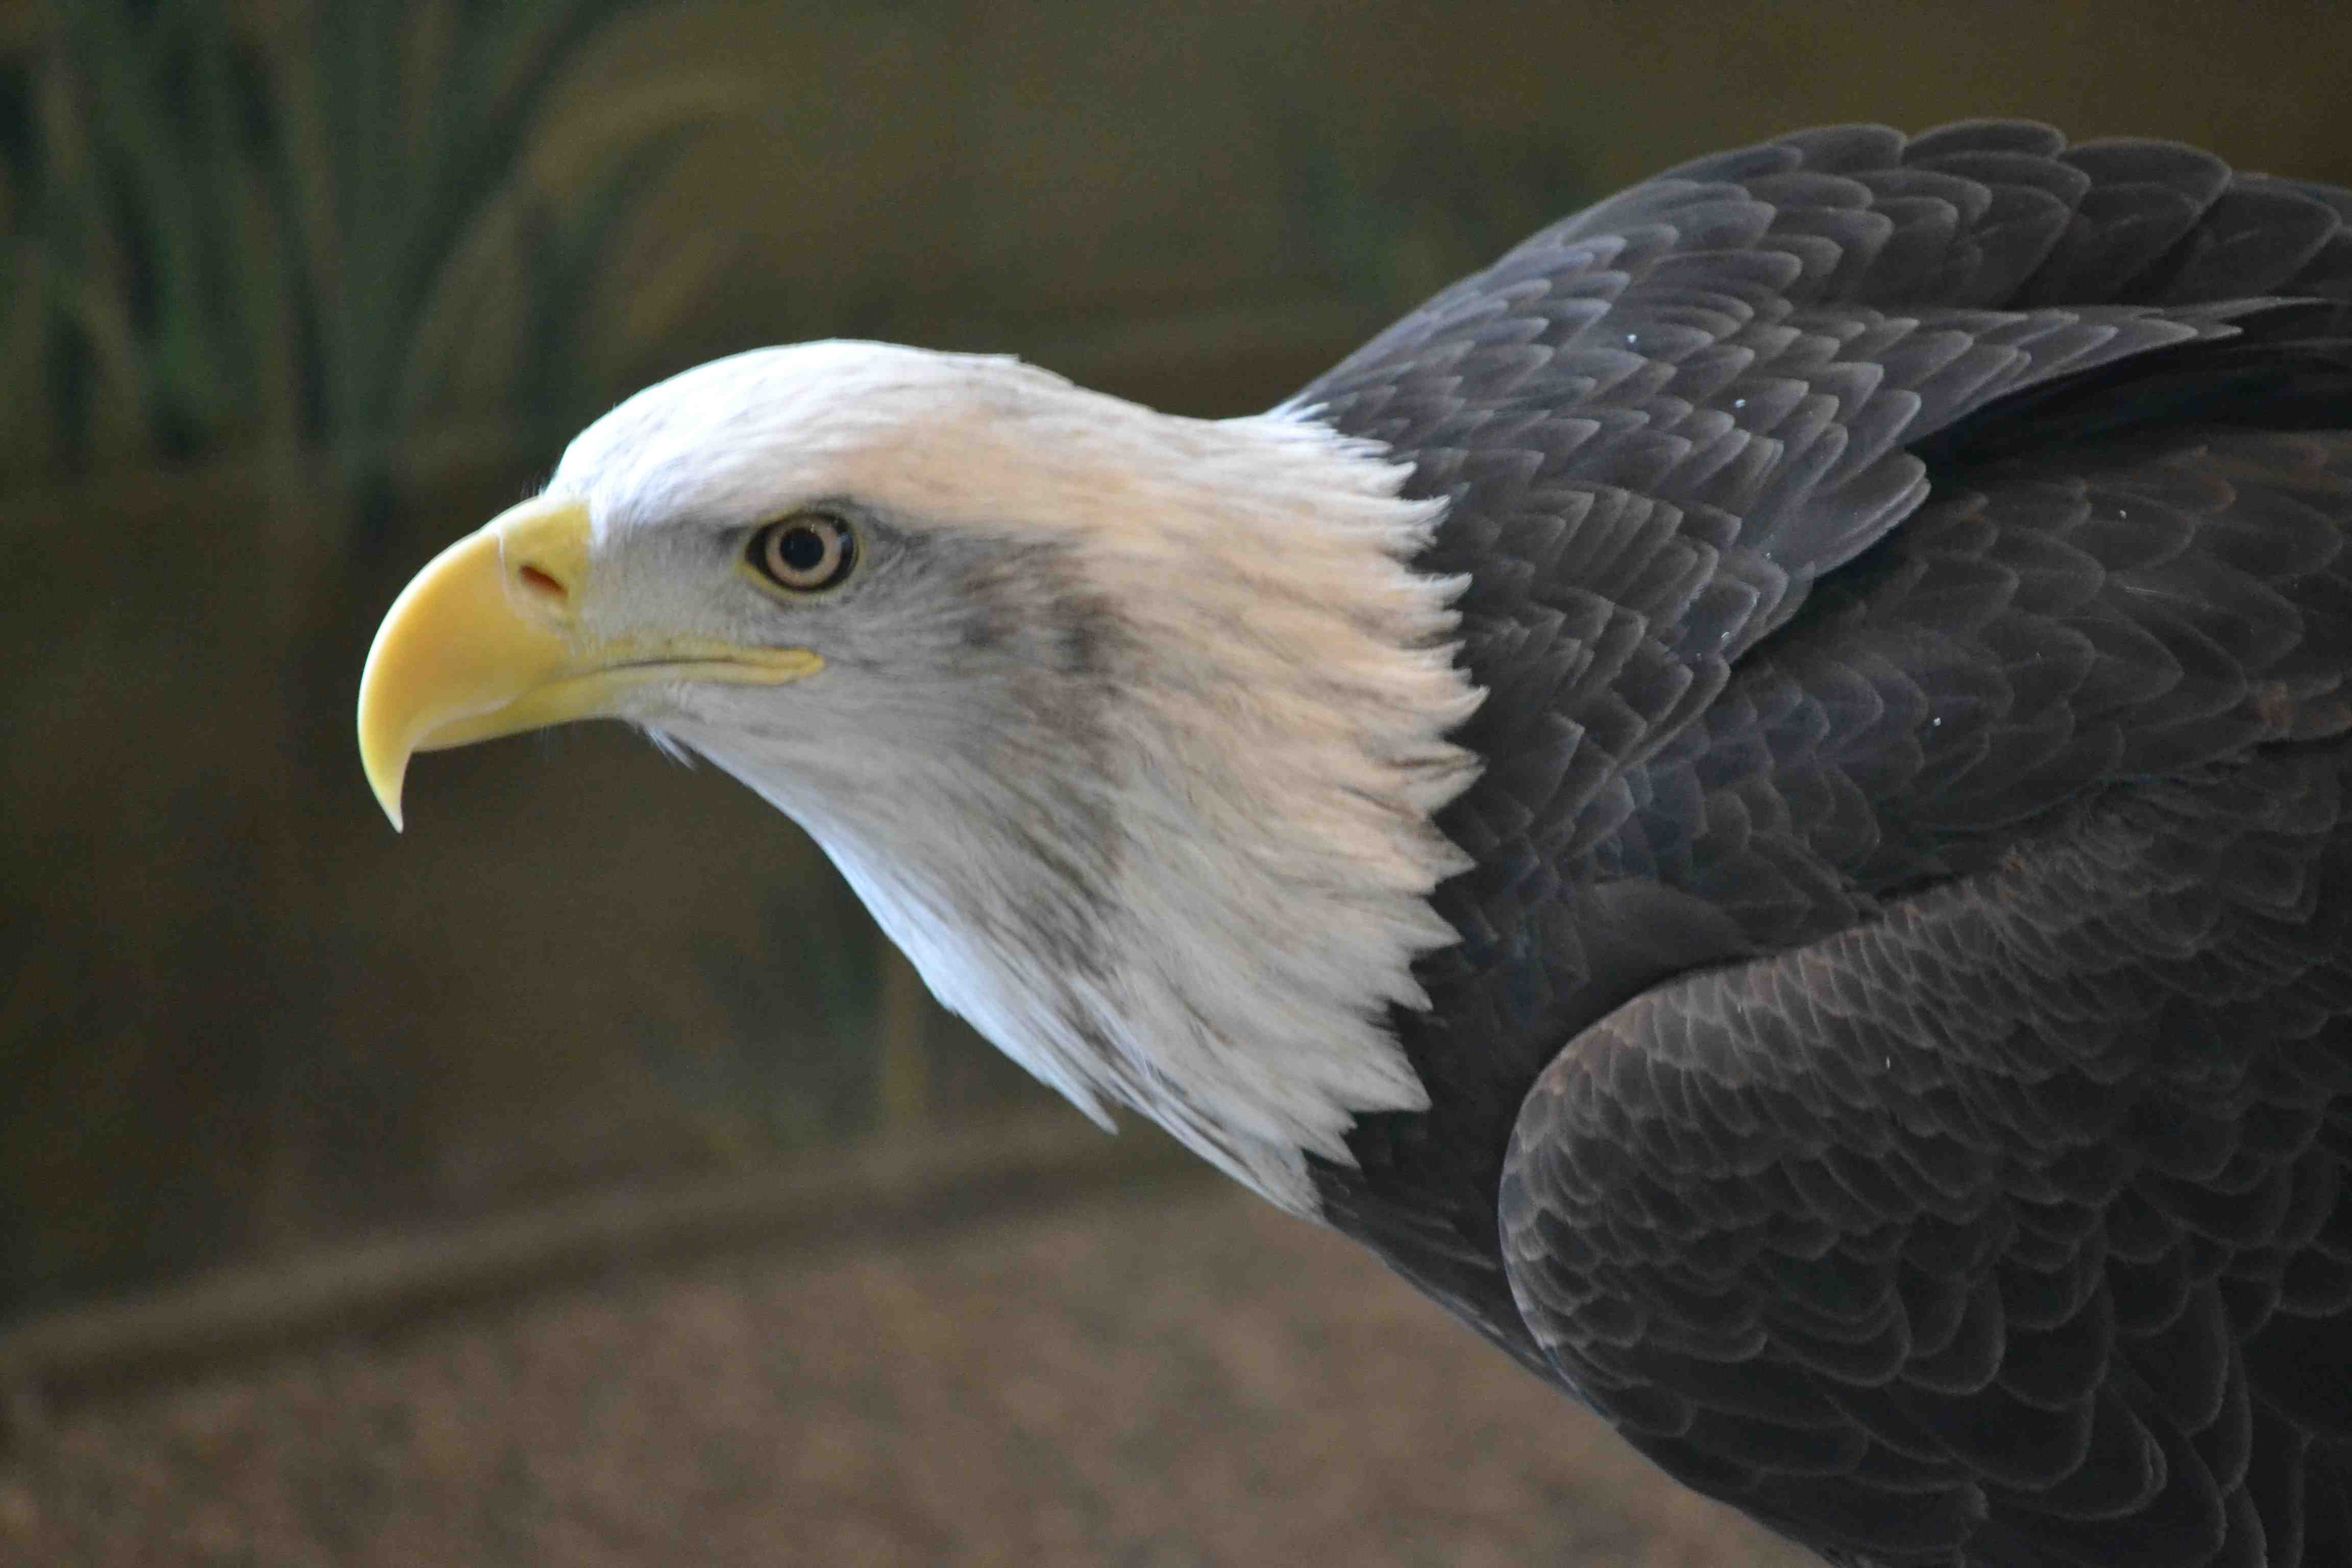 ... Eagle Center gives him a home and helps people learn about eagles